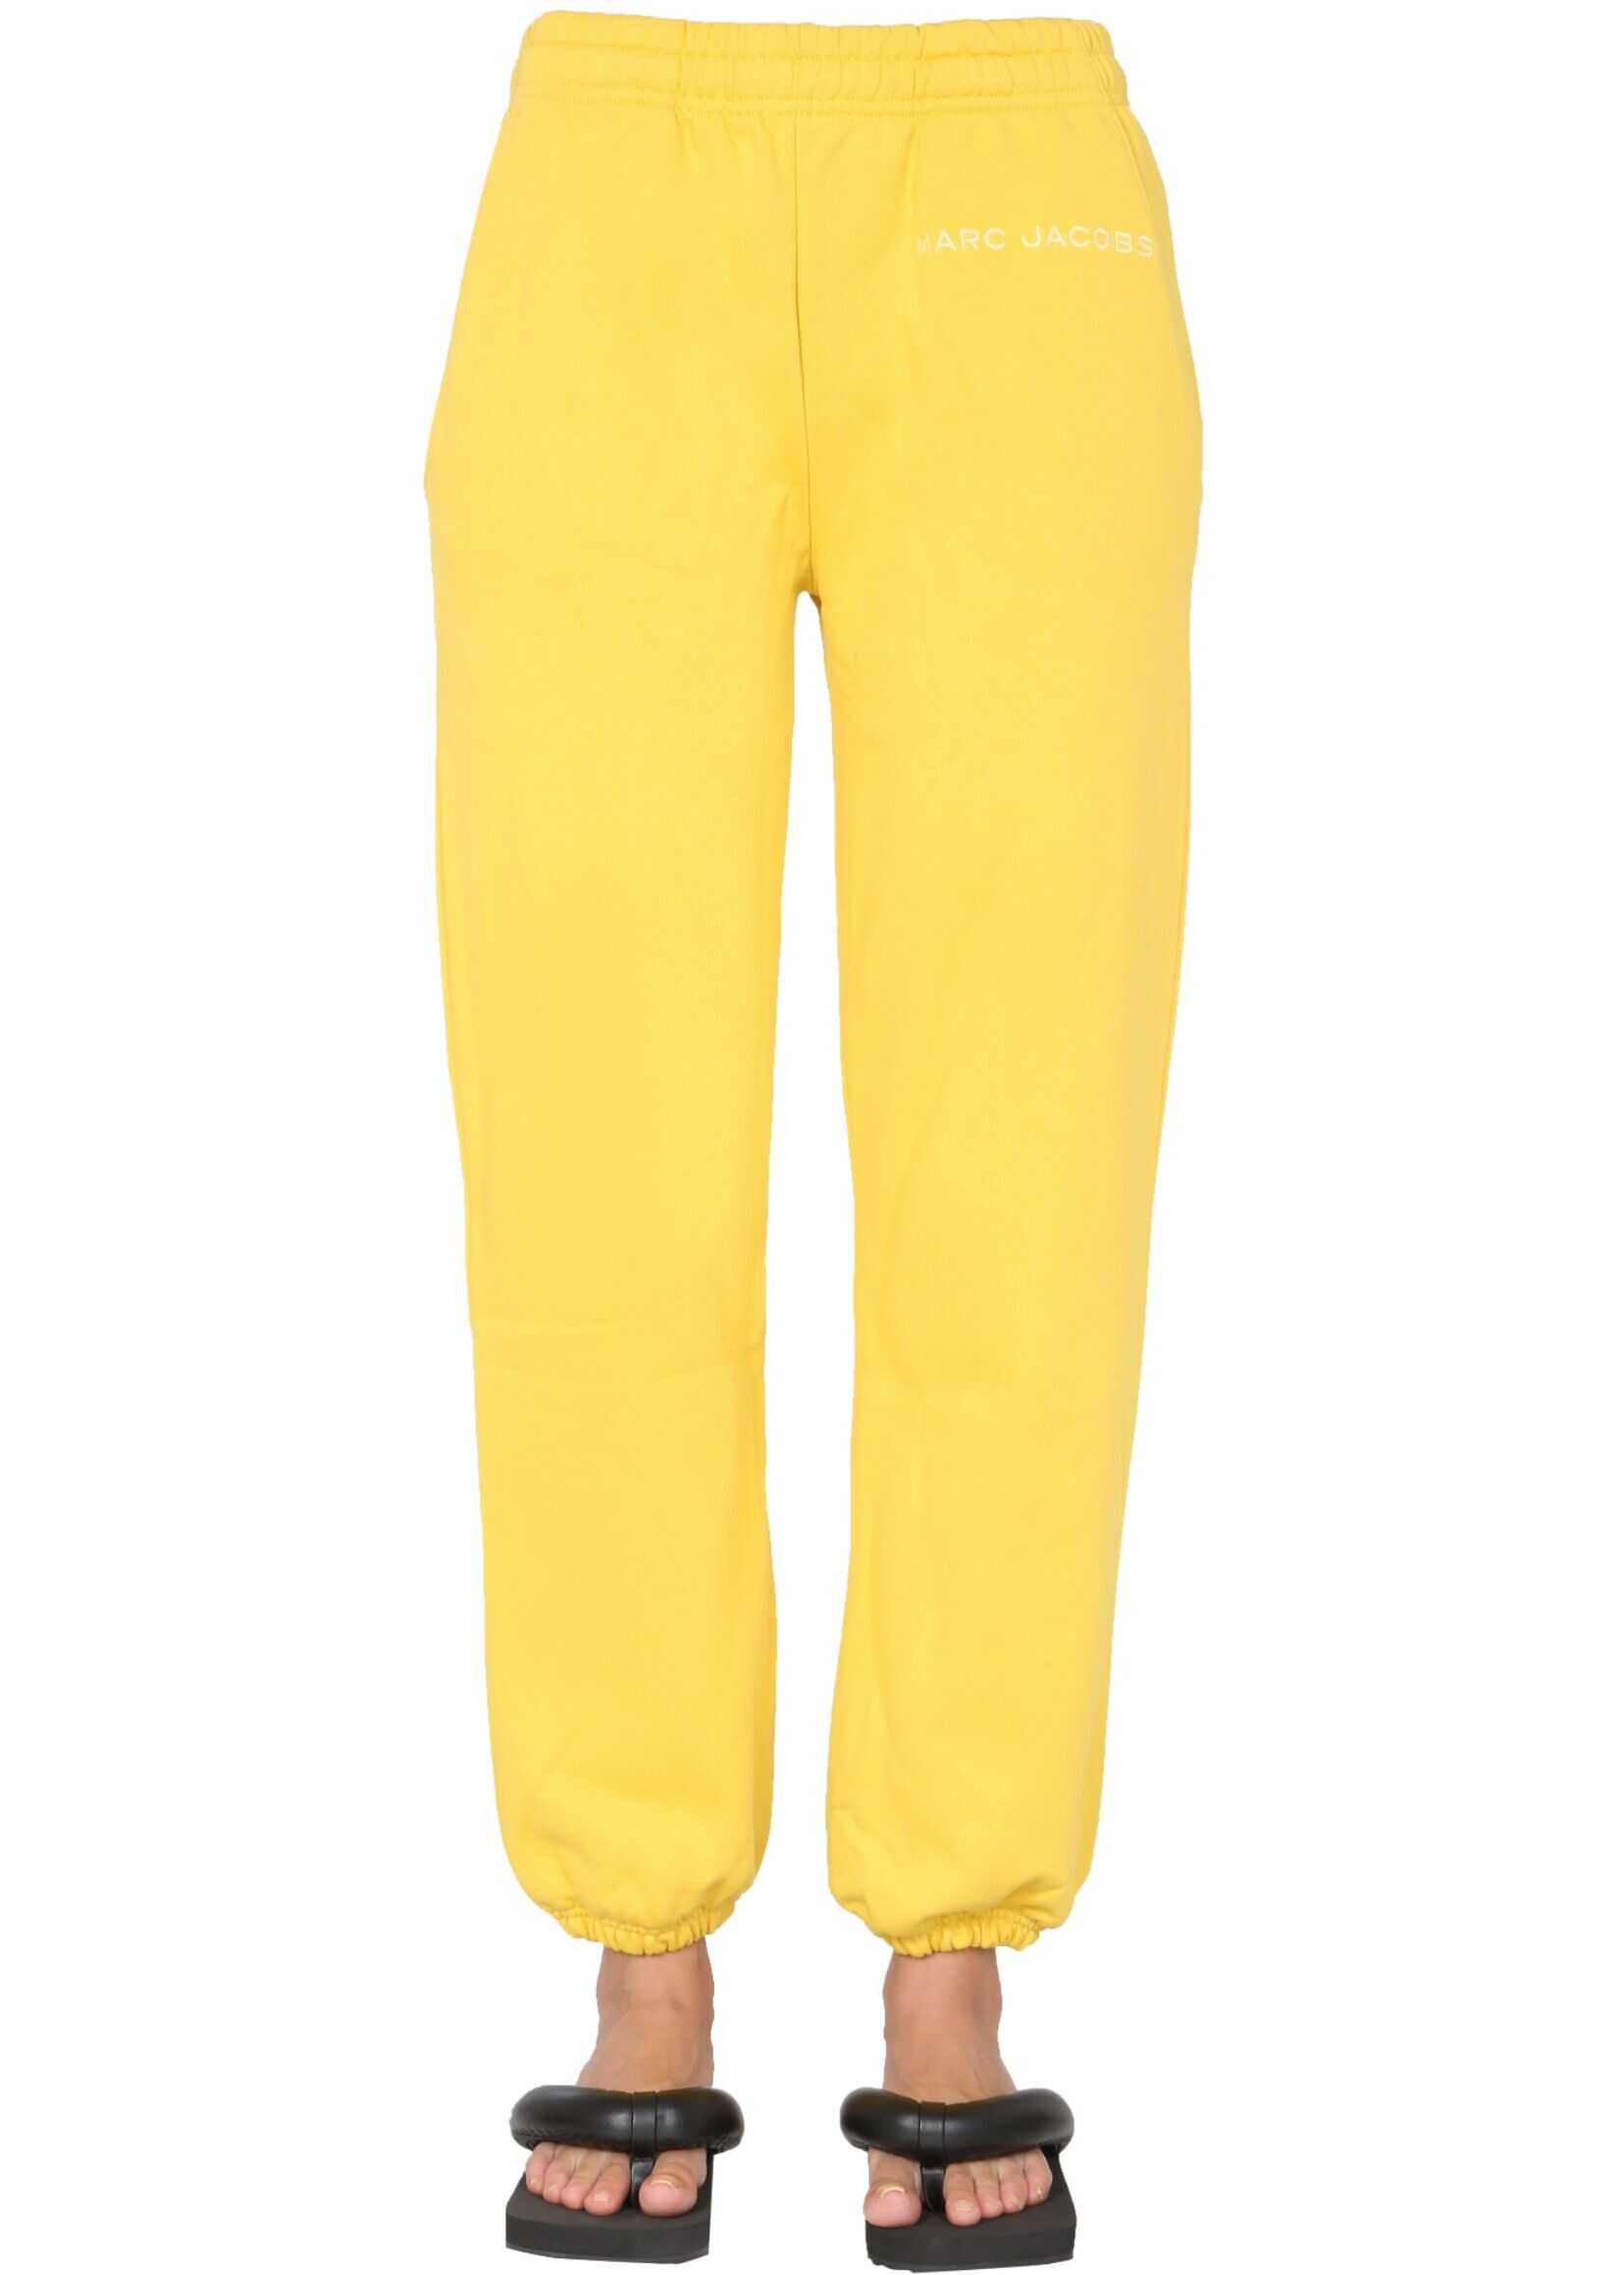 Marc Jacobs Jogging Pants With Embroidered Logo C412C05PF21_732 YELLOW image0